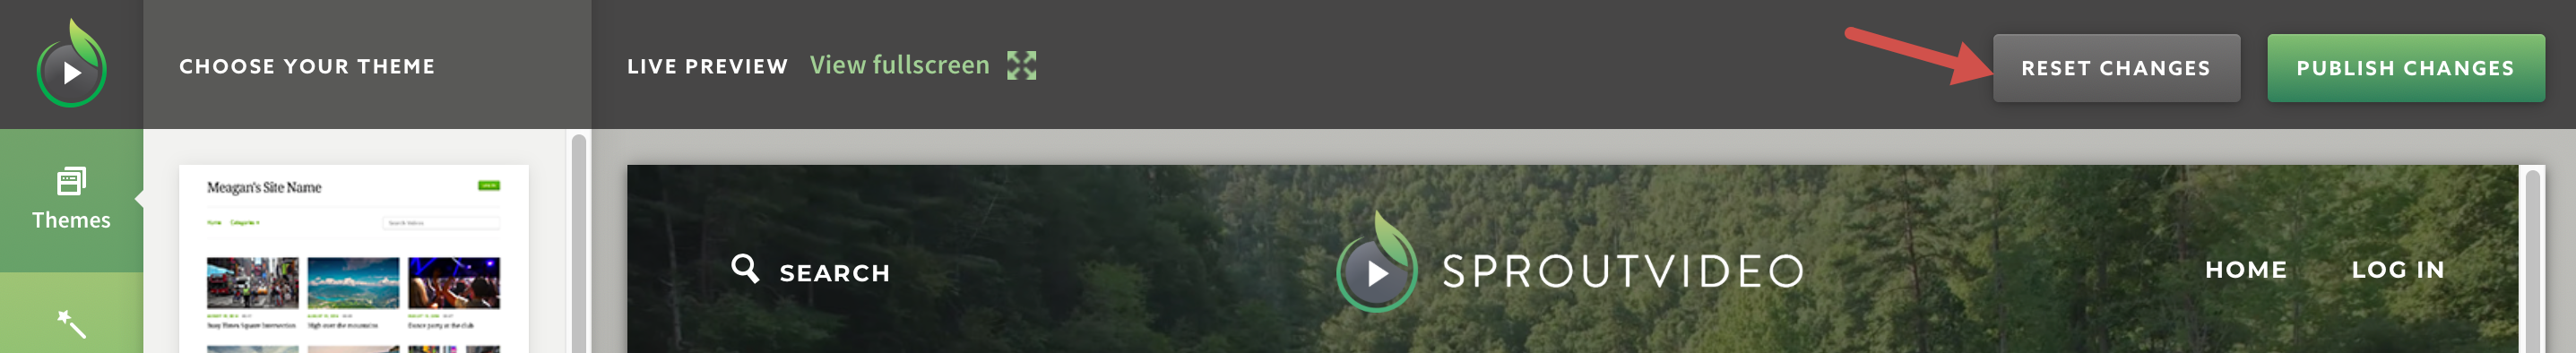 Reset changes to your video website hosted on SproutVideo